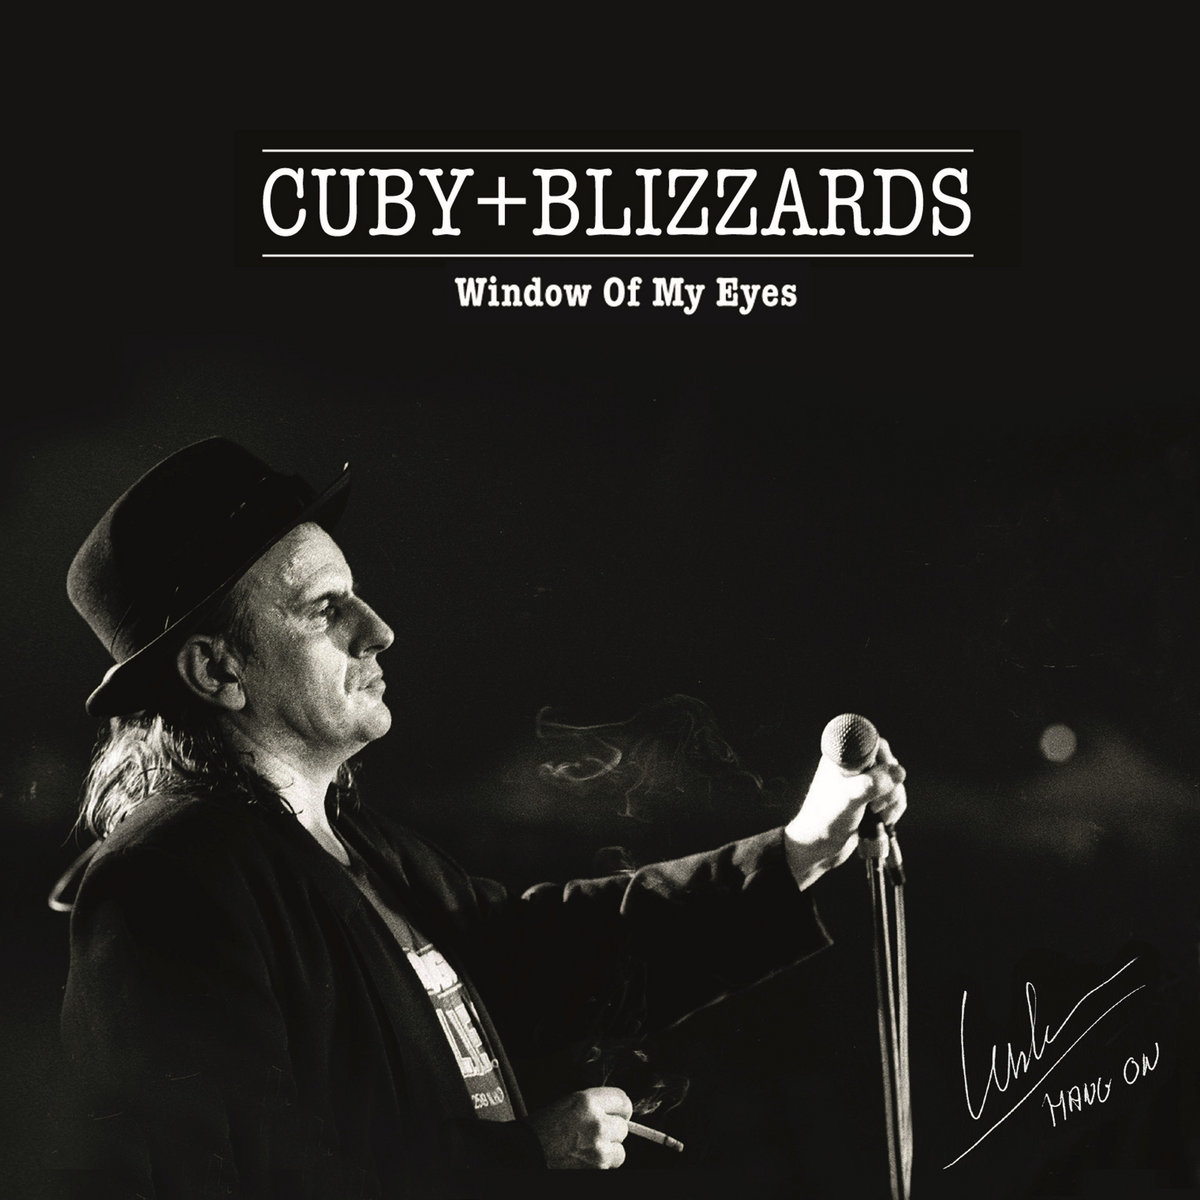 Cuby + Blizzards – Window of My Eyes